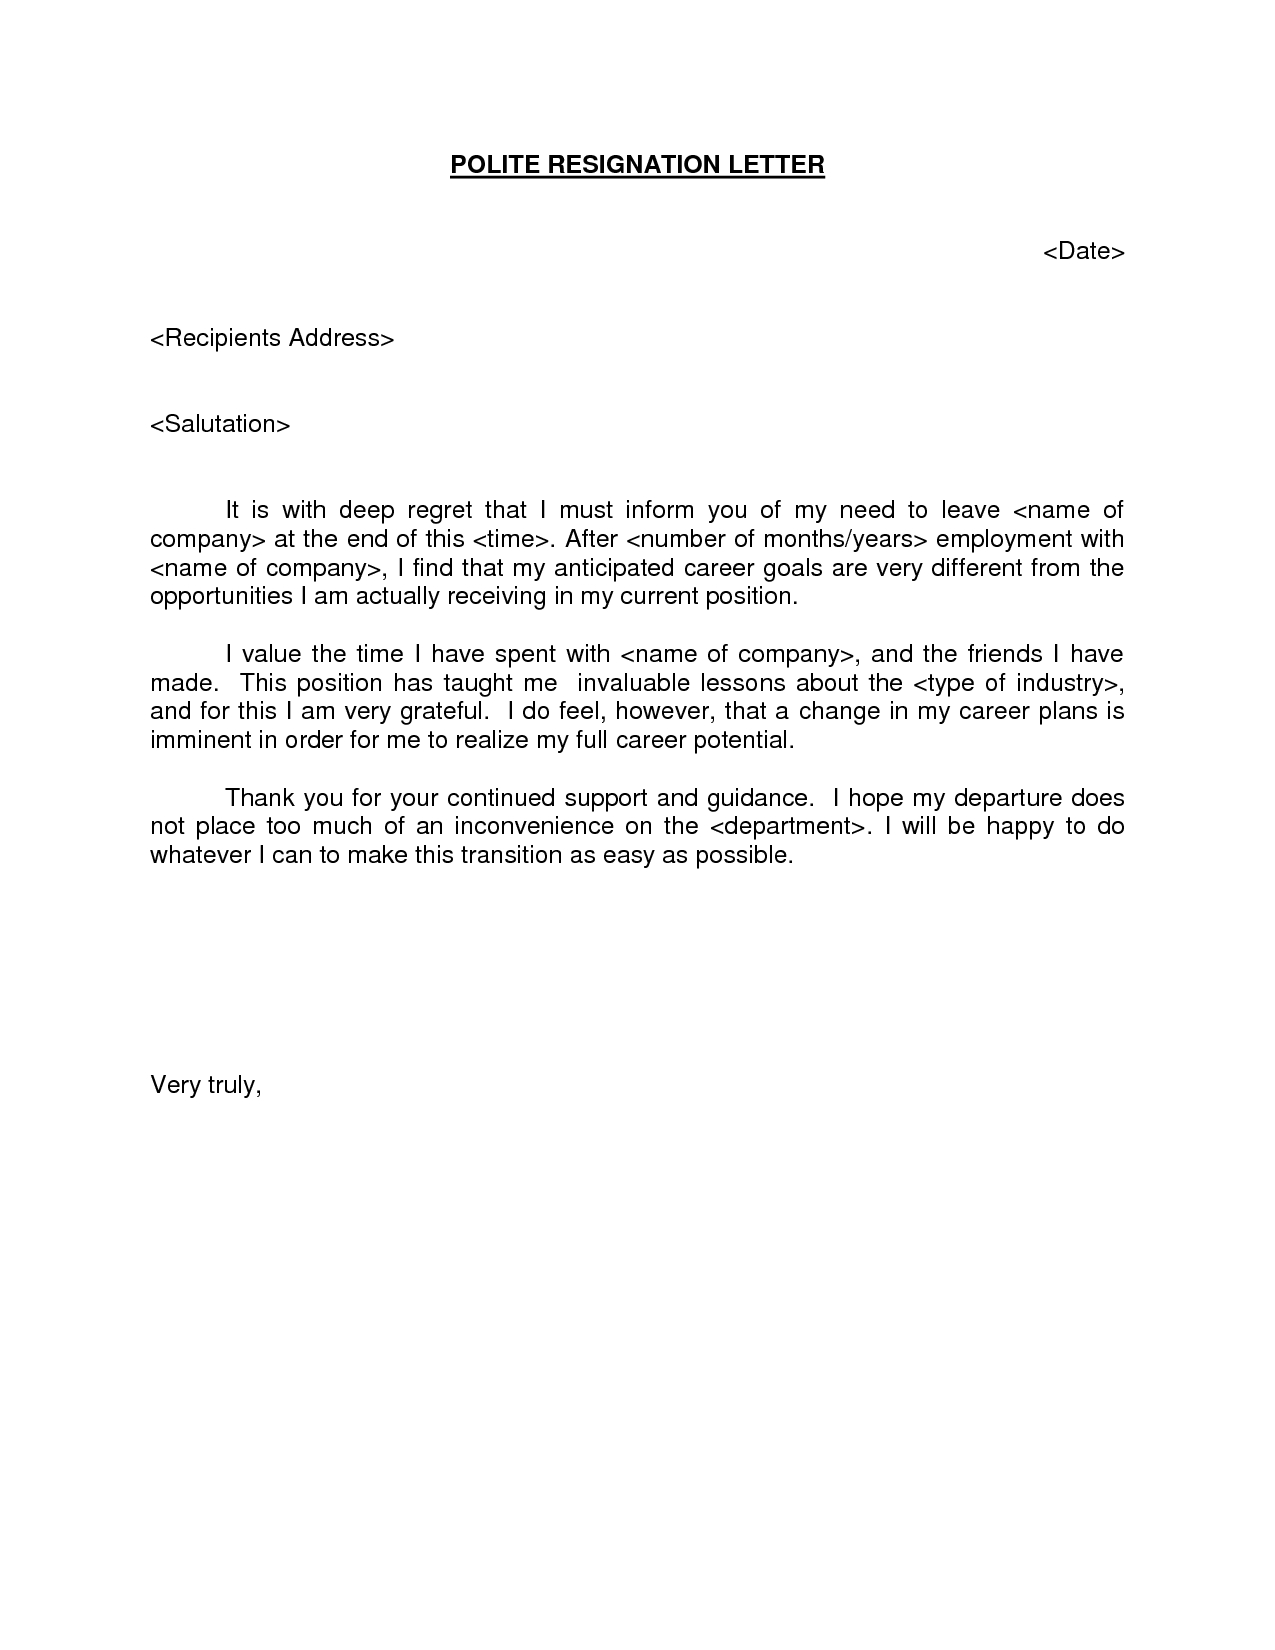 donation reminder letter template example-POLITE RESIGNATION LETTER BestdealformoneyWriting A Letter Resignation Email Letter Sample 8-e